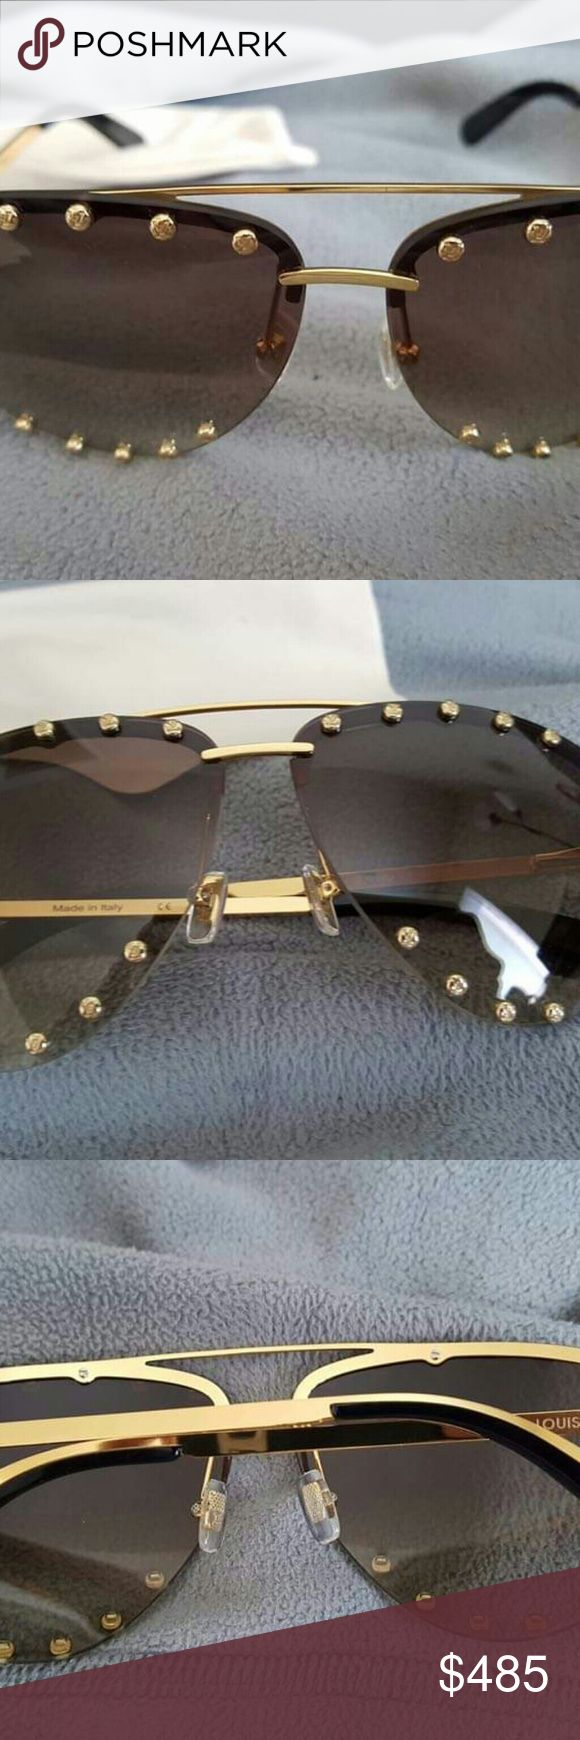 32cb520641d8 Authentic Louis Vuitton The Party Sunglasses Gently used in excellent  condition. 100% Authentic No